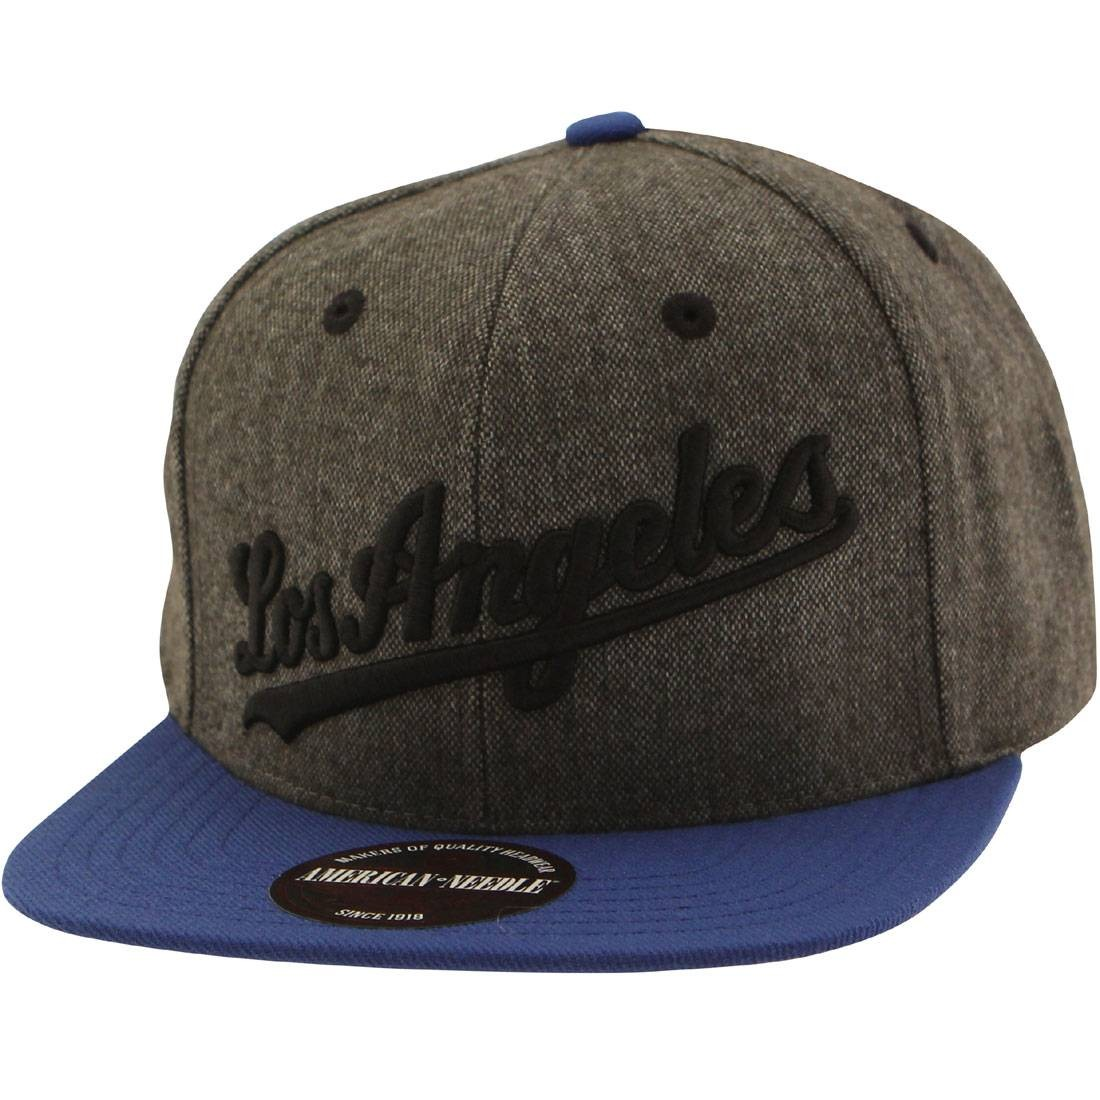 c3b09505be3e1 American Needle MLB Los Angeles Dodgers Snapback Cap - Flak brown royal